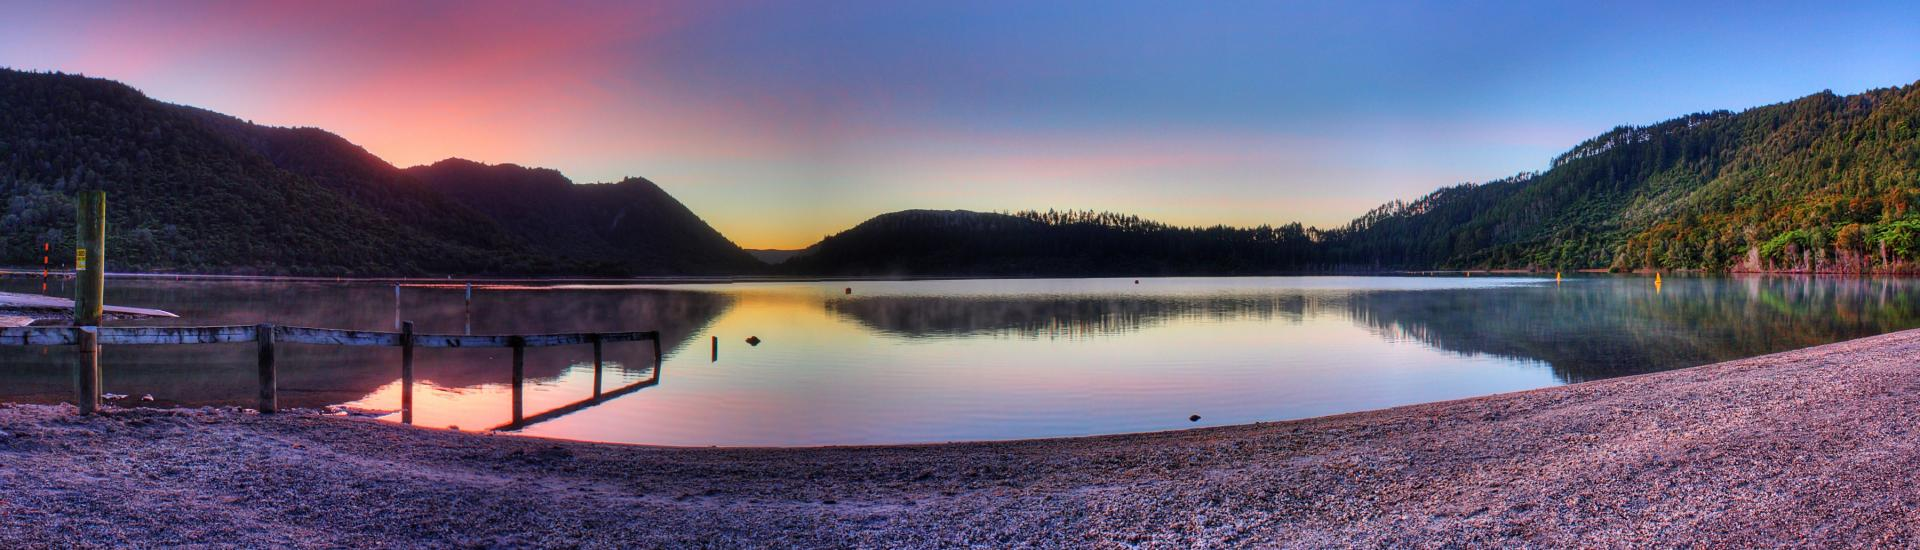 Sunset Over Blue Lake, Rotorua, New Zealand